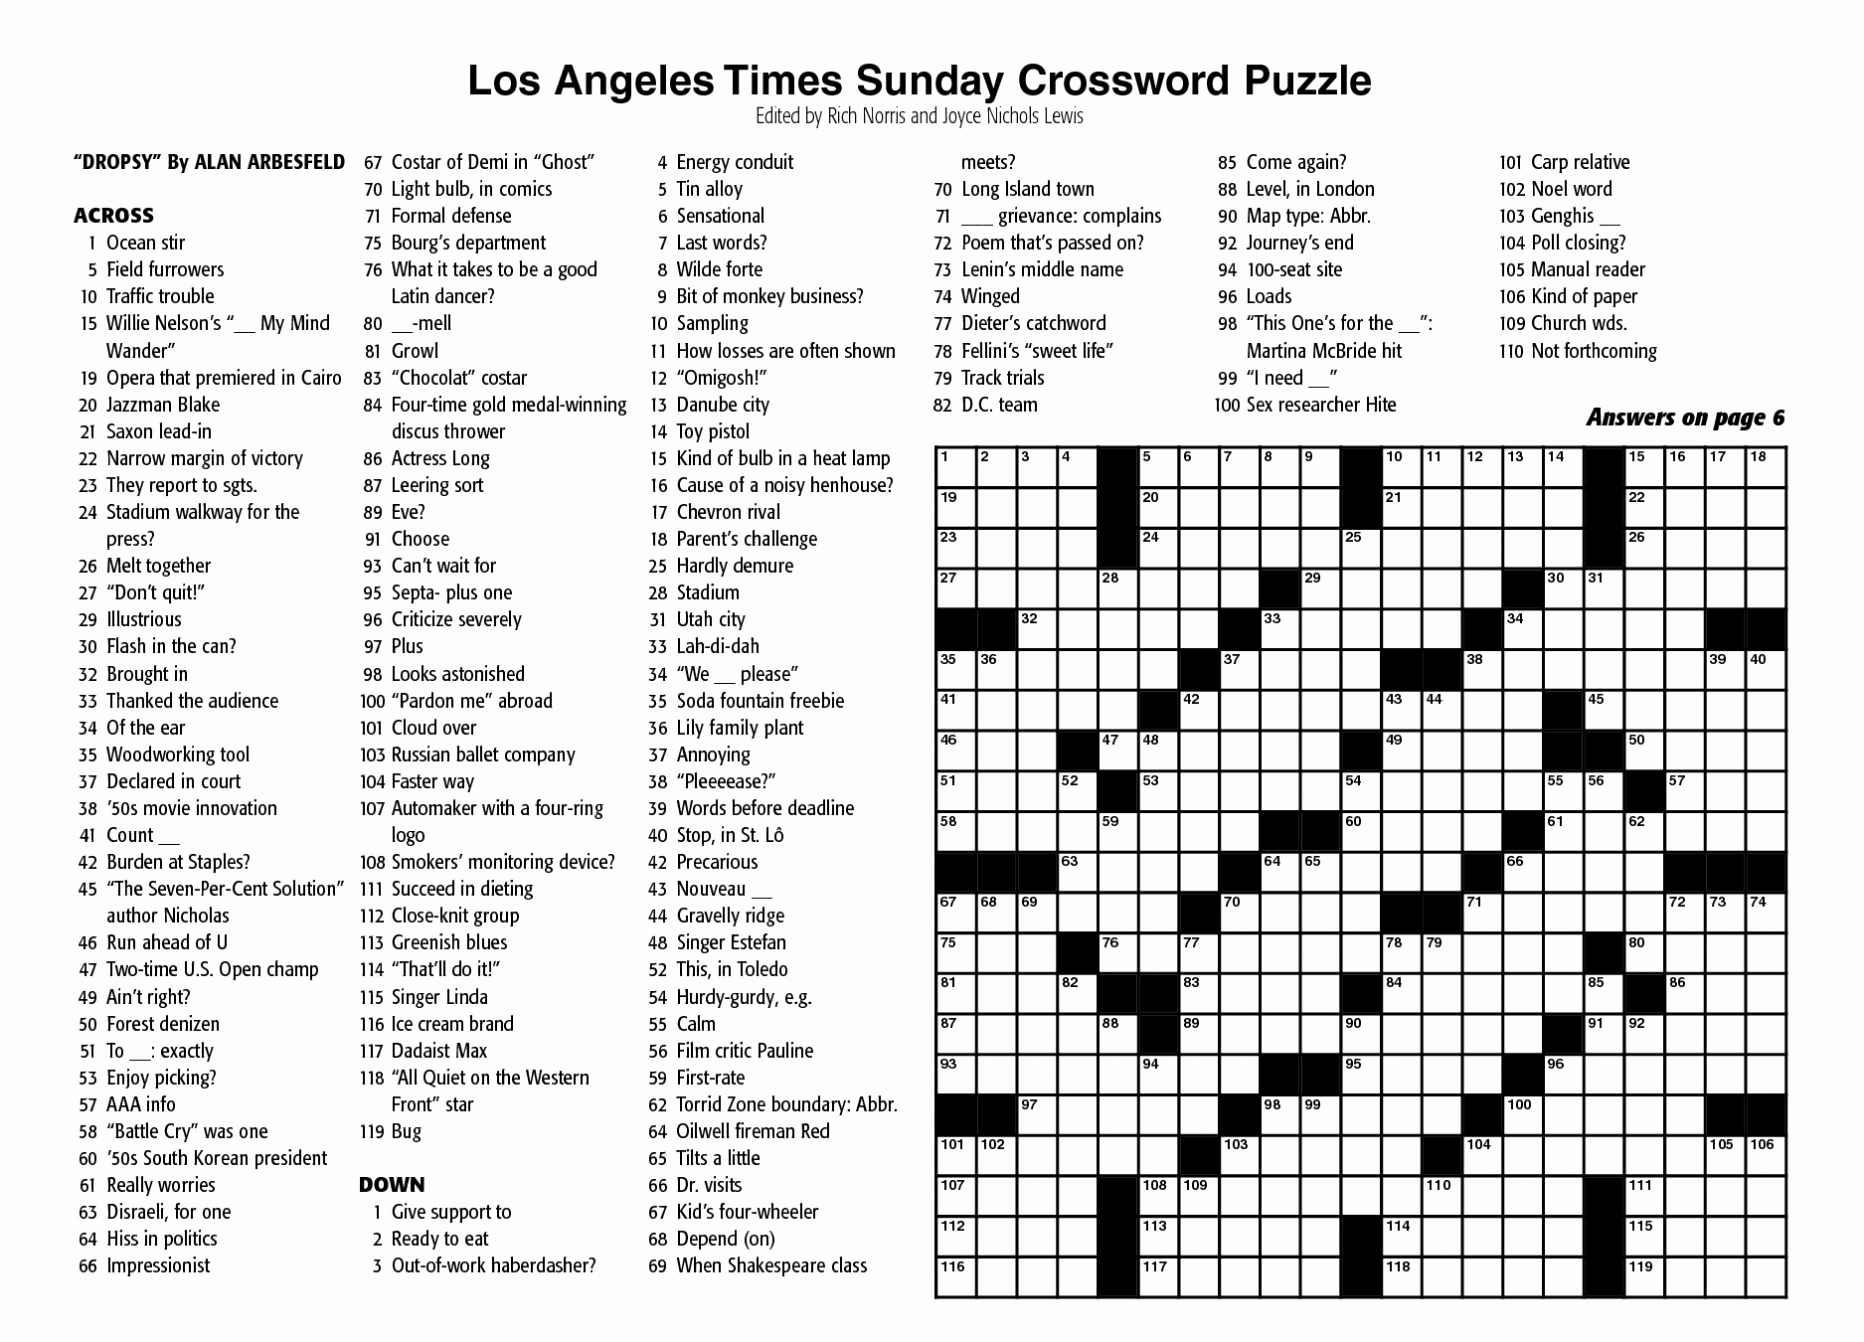 Sunday Crossword Puzzle Printable Ny Times Syndicated Answers - Free - La Times Sunday Crossword Puzzle Printable